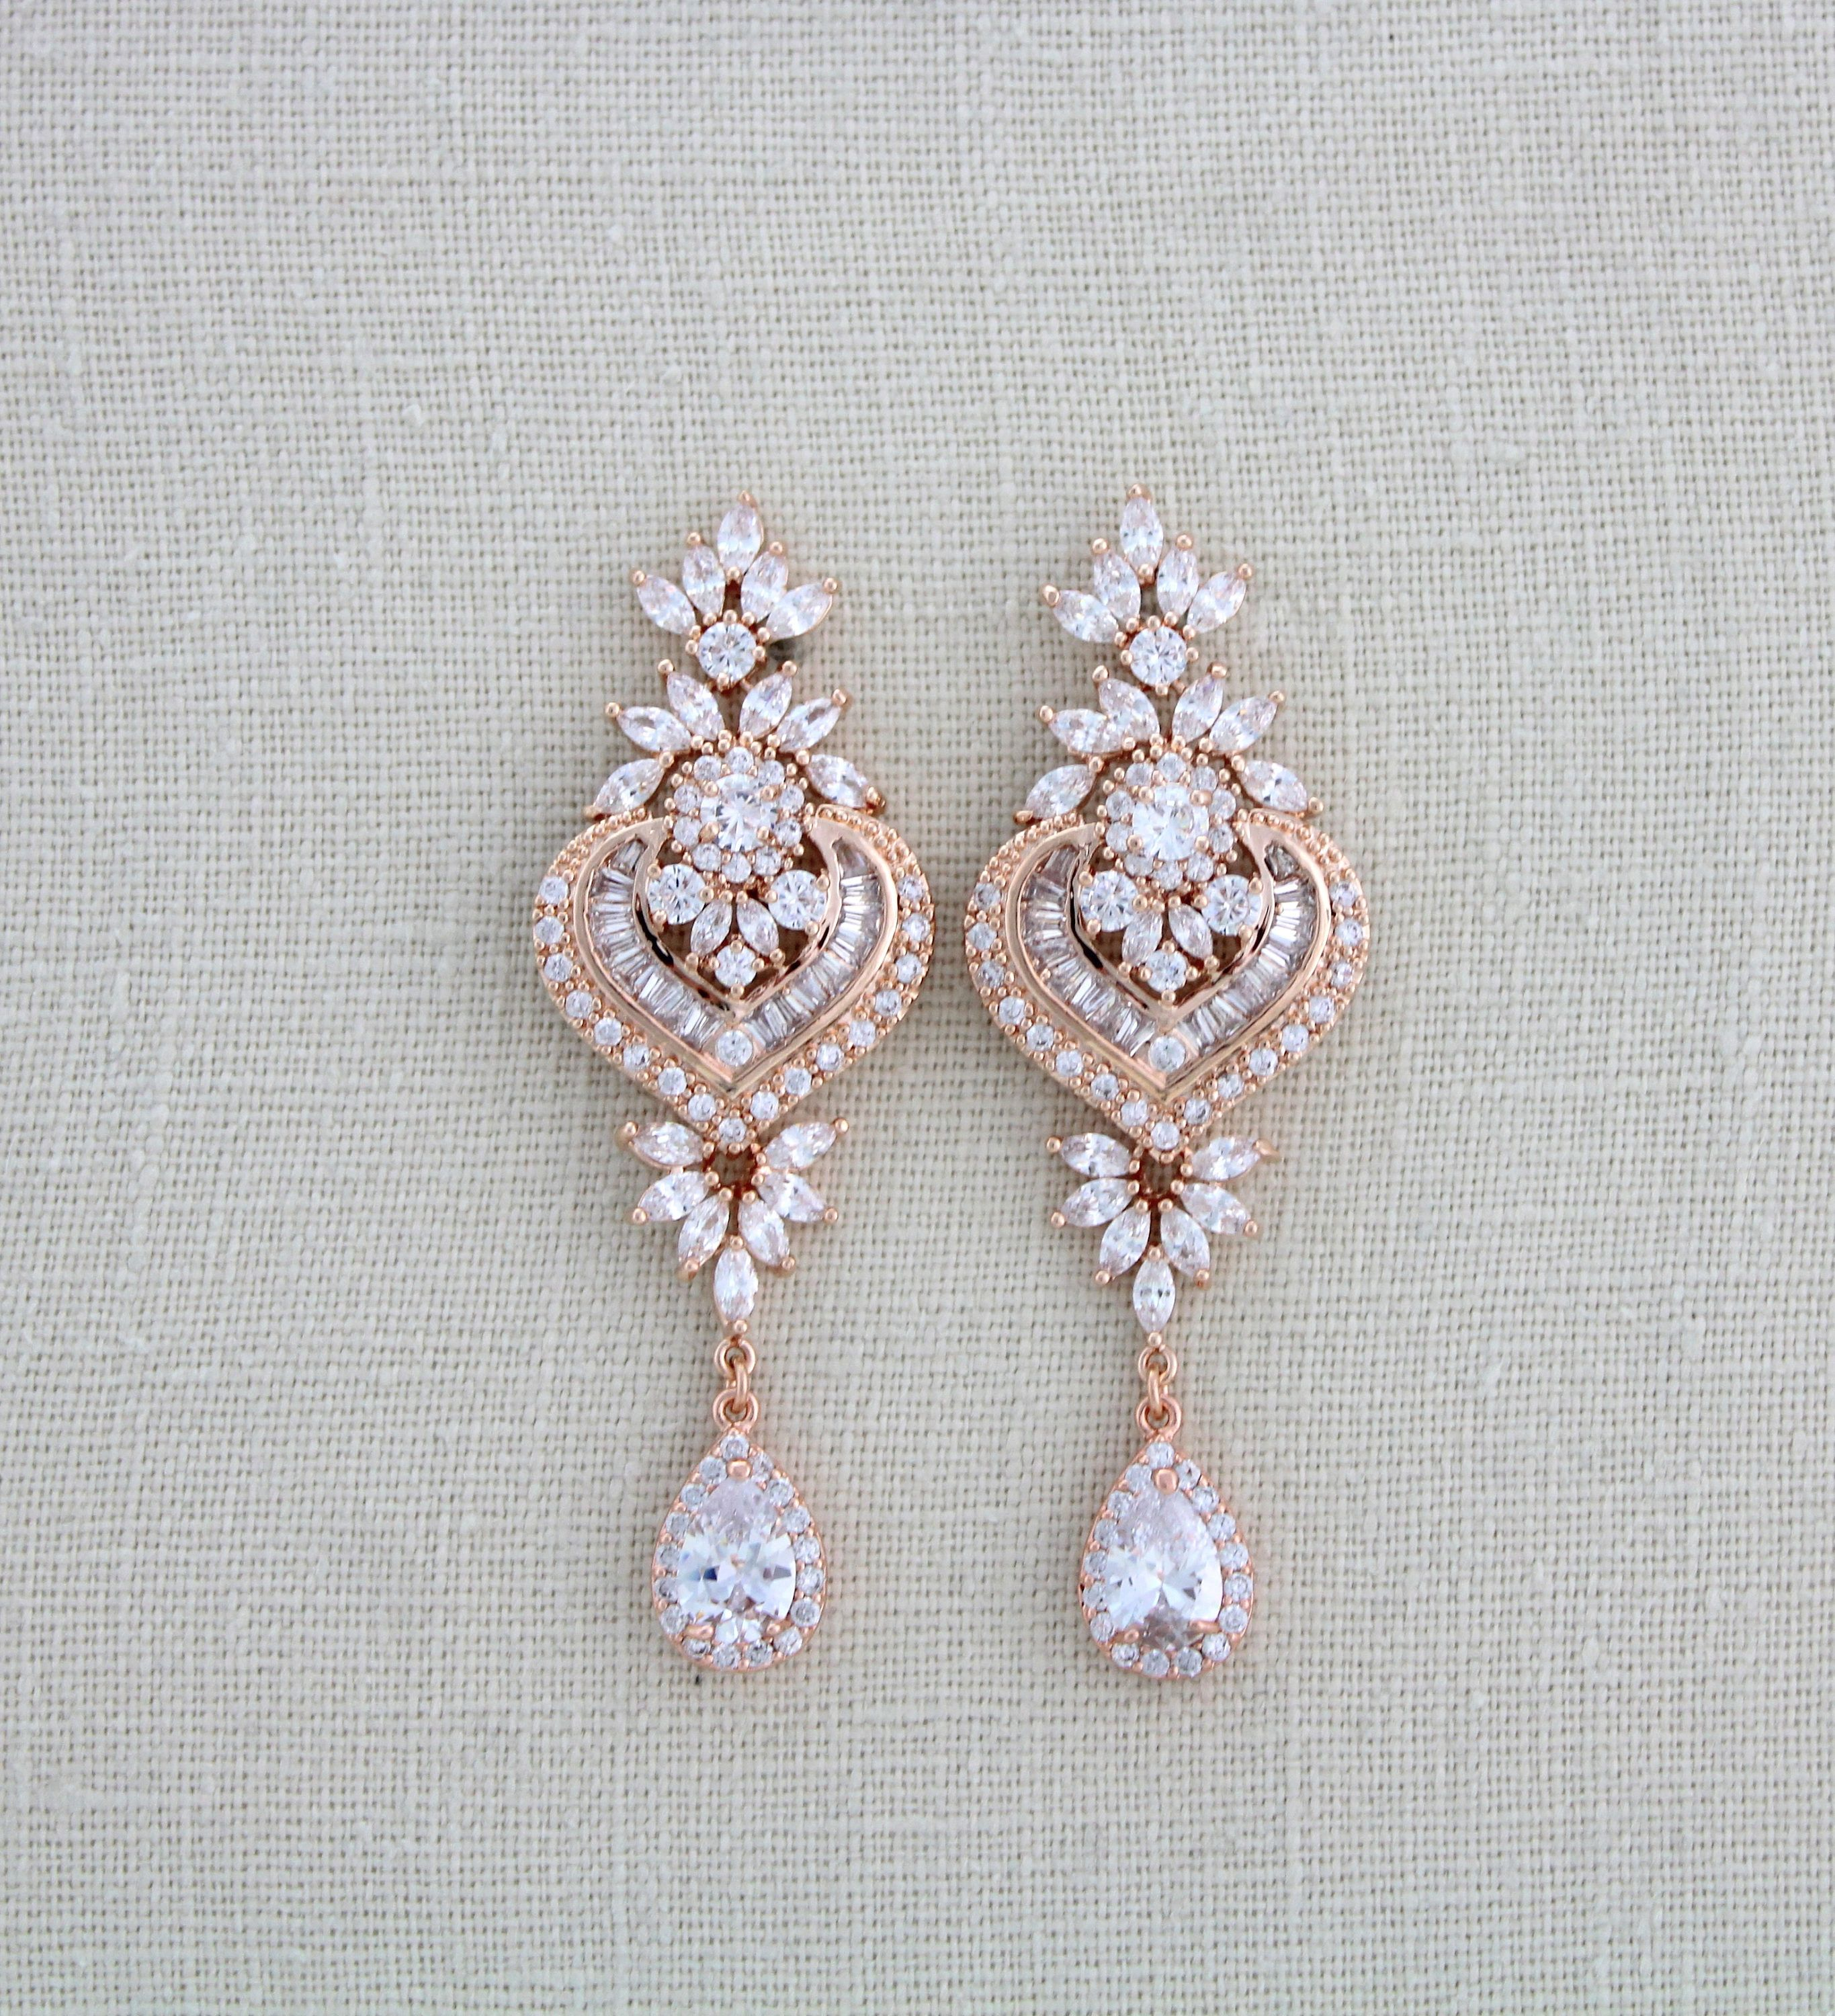 Rose gold bridal earrings bridal jewelry rose gold chandelier rose gold bridal earrings bridal jewelry rose gold chandelier earrings rose gold crystal aloadofball Image collections